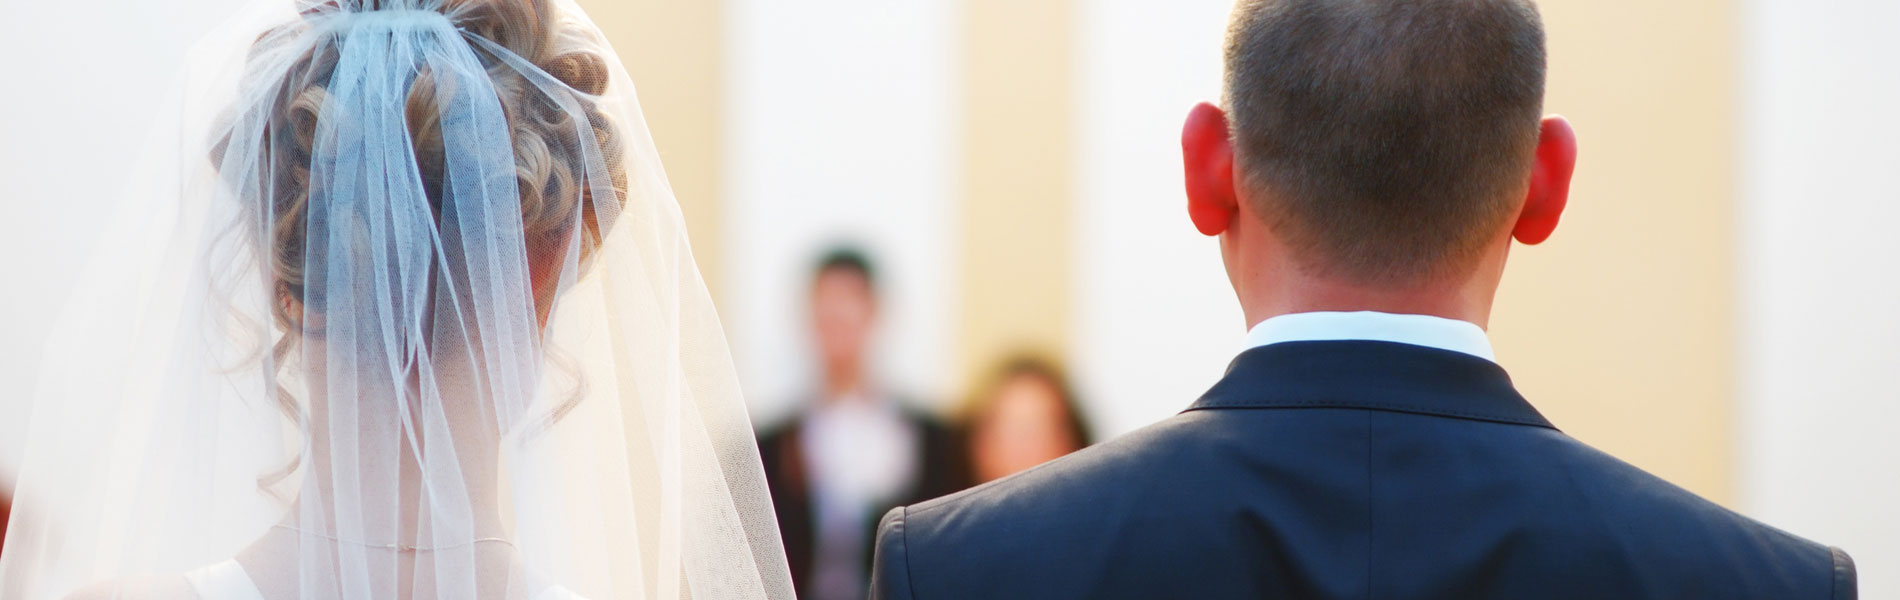 Your private wedding blog